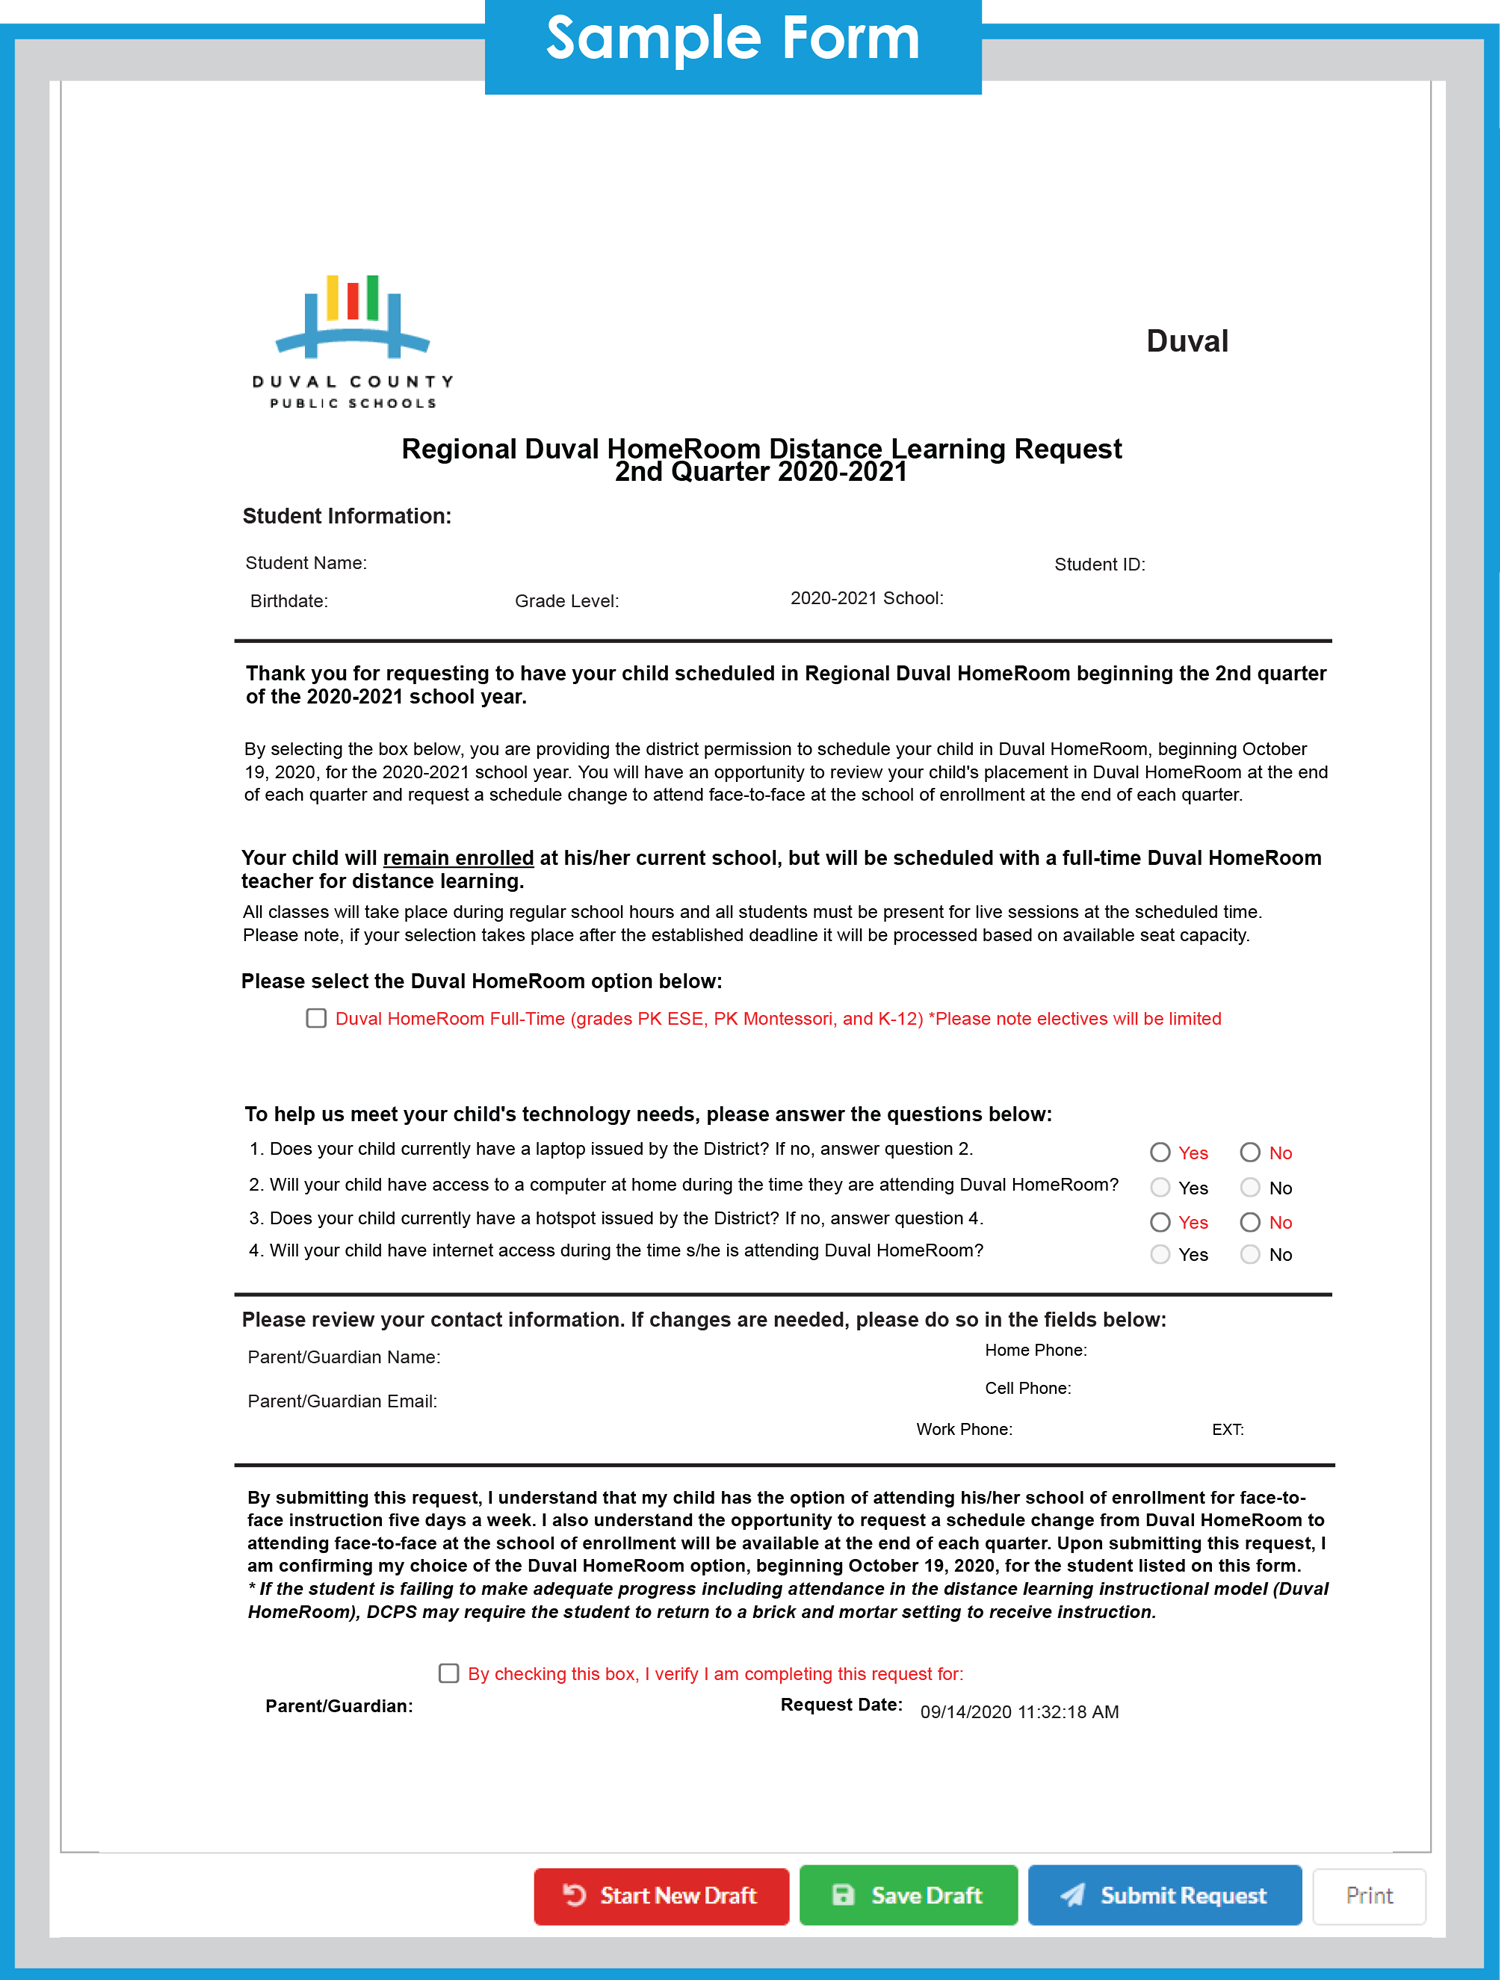 Regional Duval HomeRoom Distance Learning Request 2nd Quarter 2020-2021 Sample Form